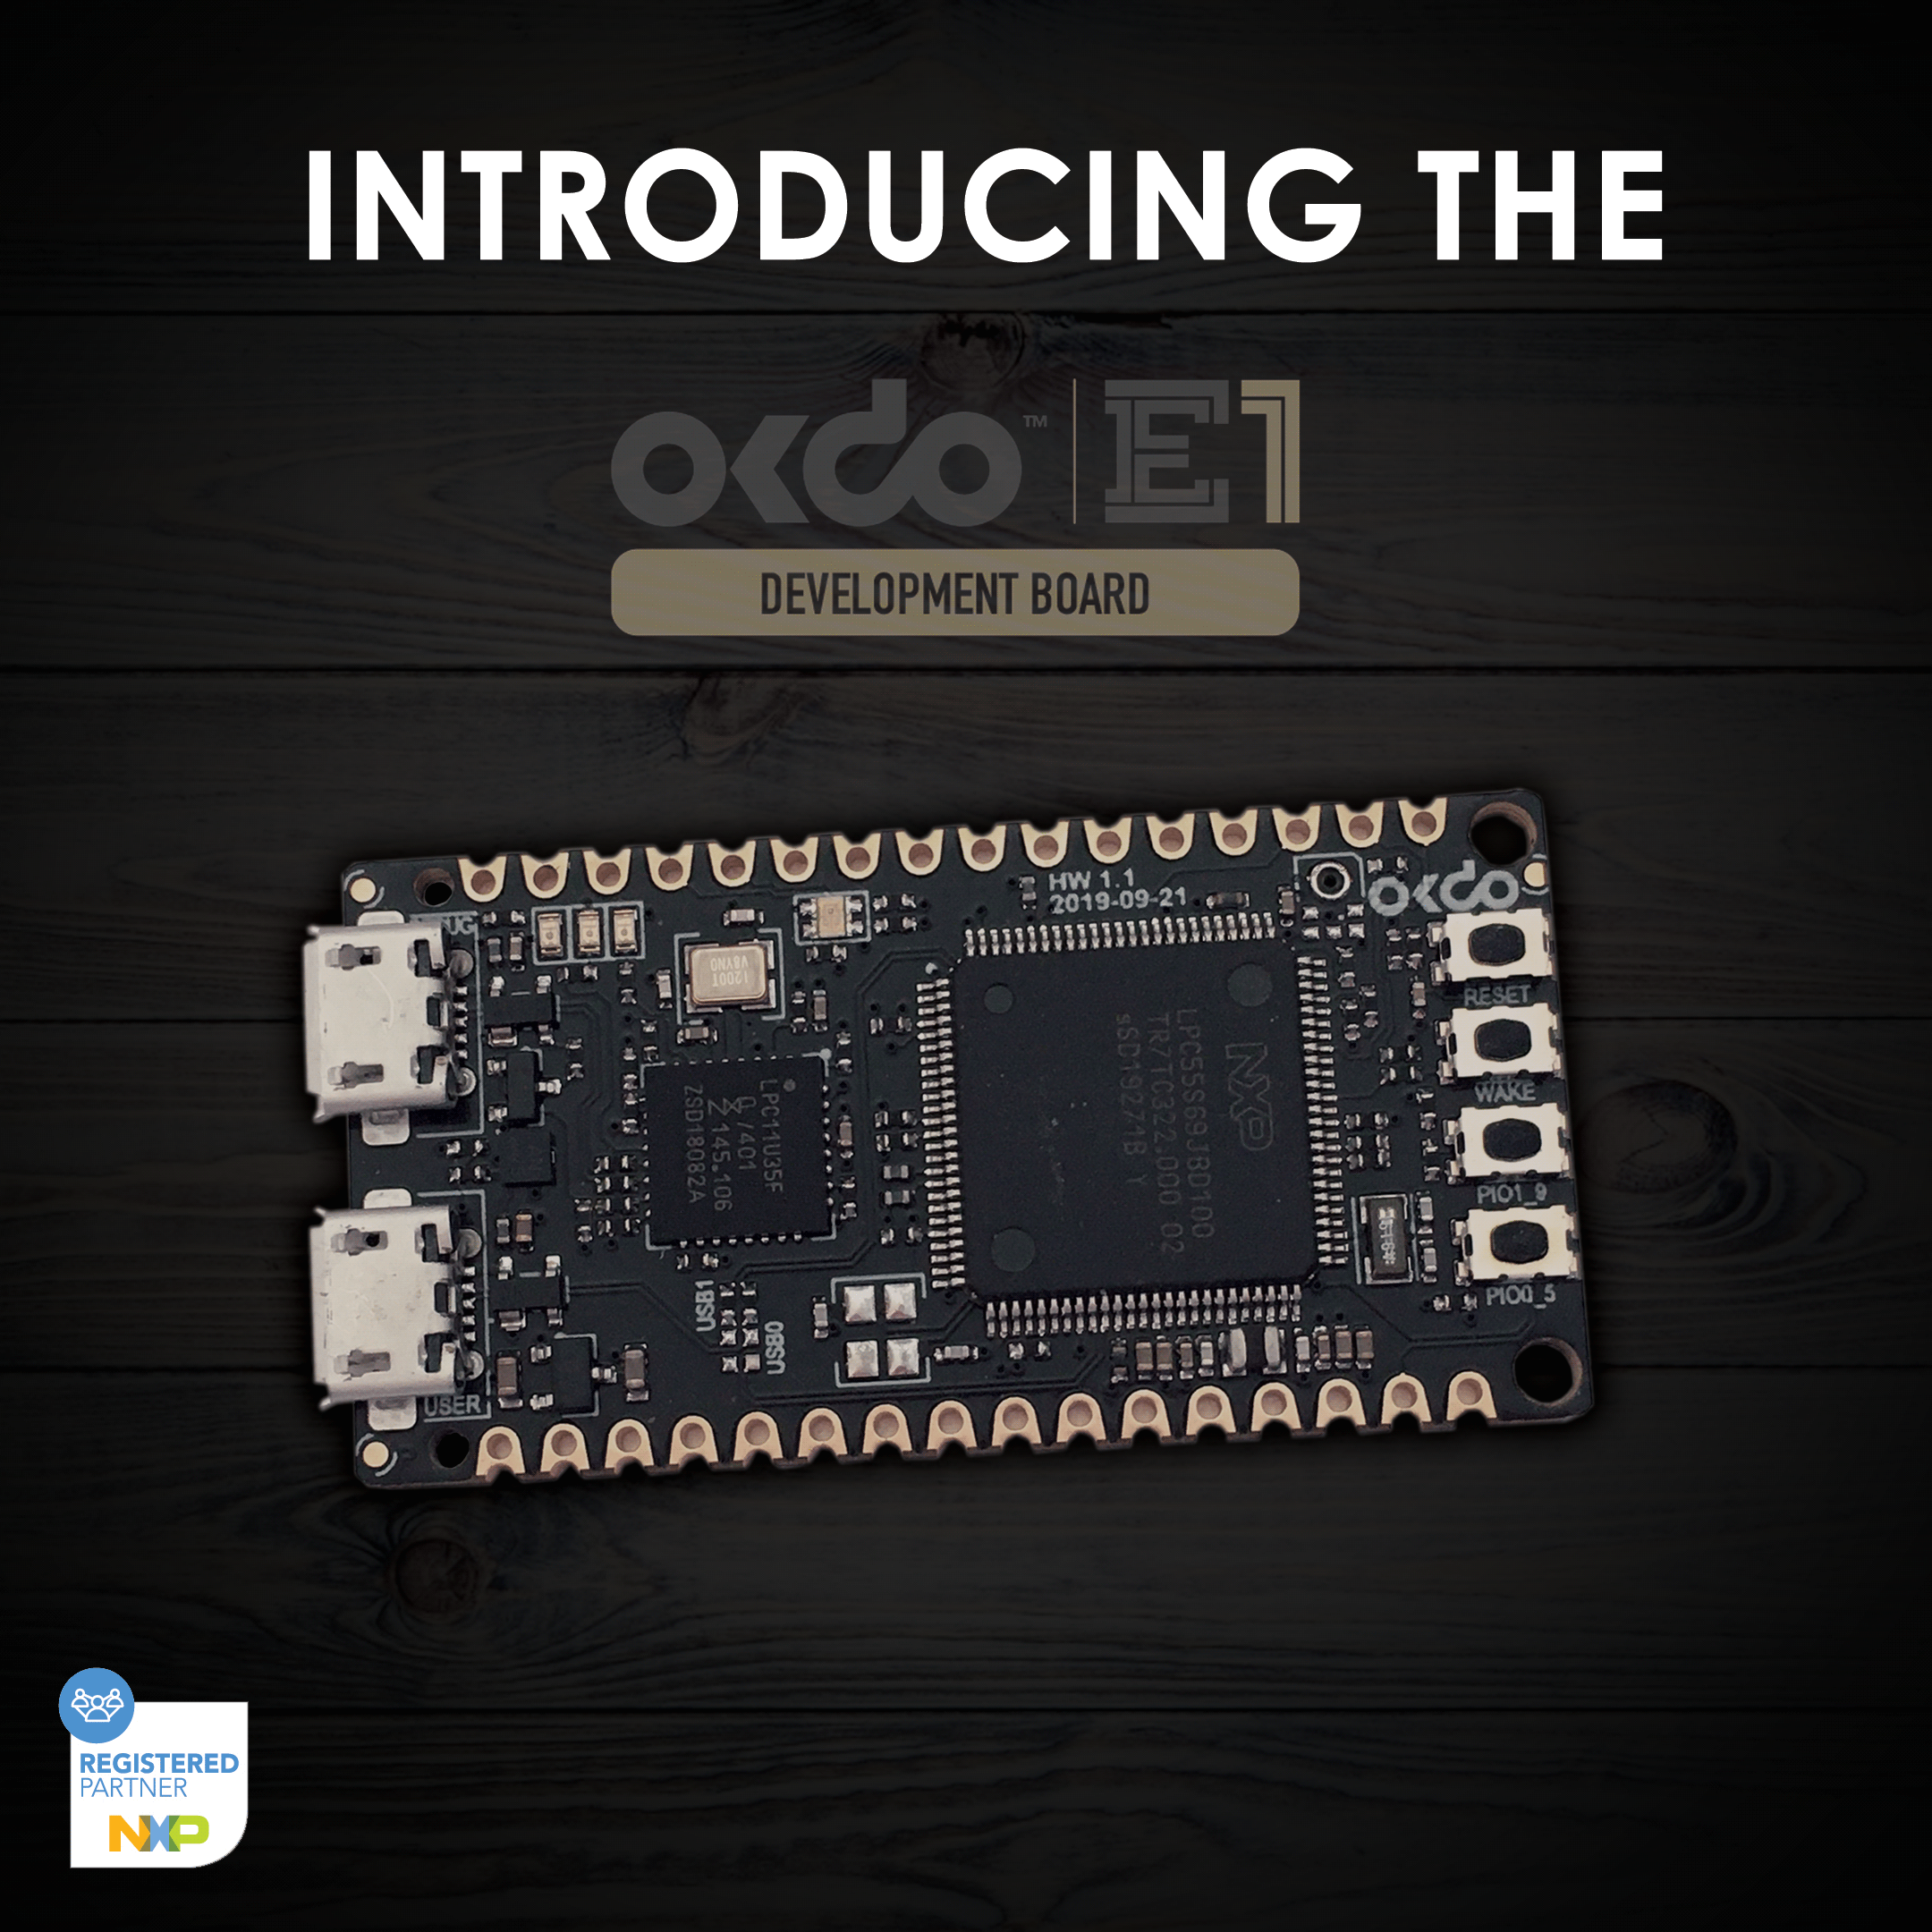 OKDO INTRODUCES E1, ITS FIRST OWN-BRAND SINGLE BOARD COMPUTER